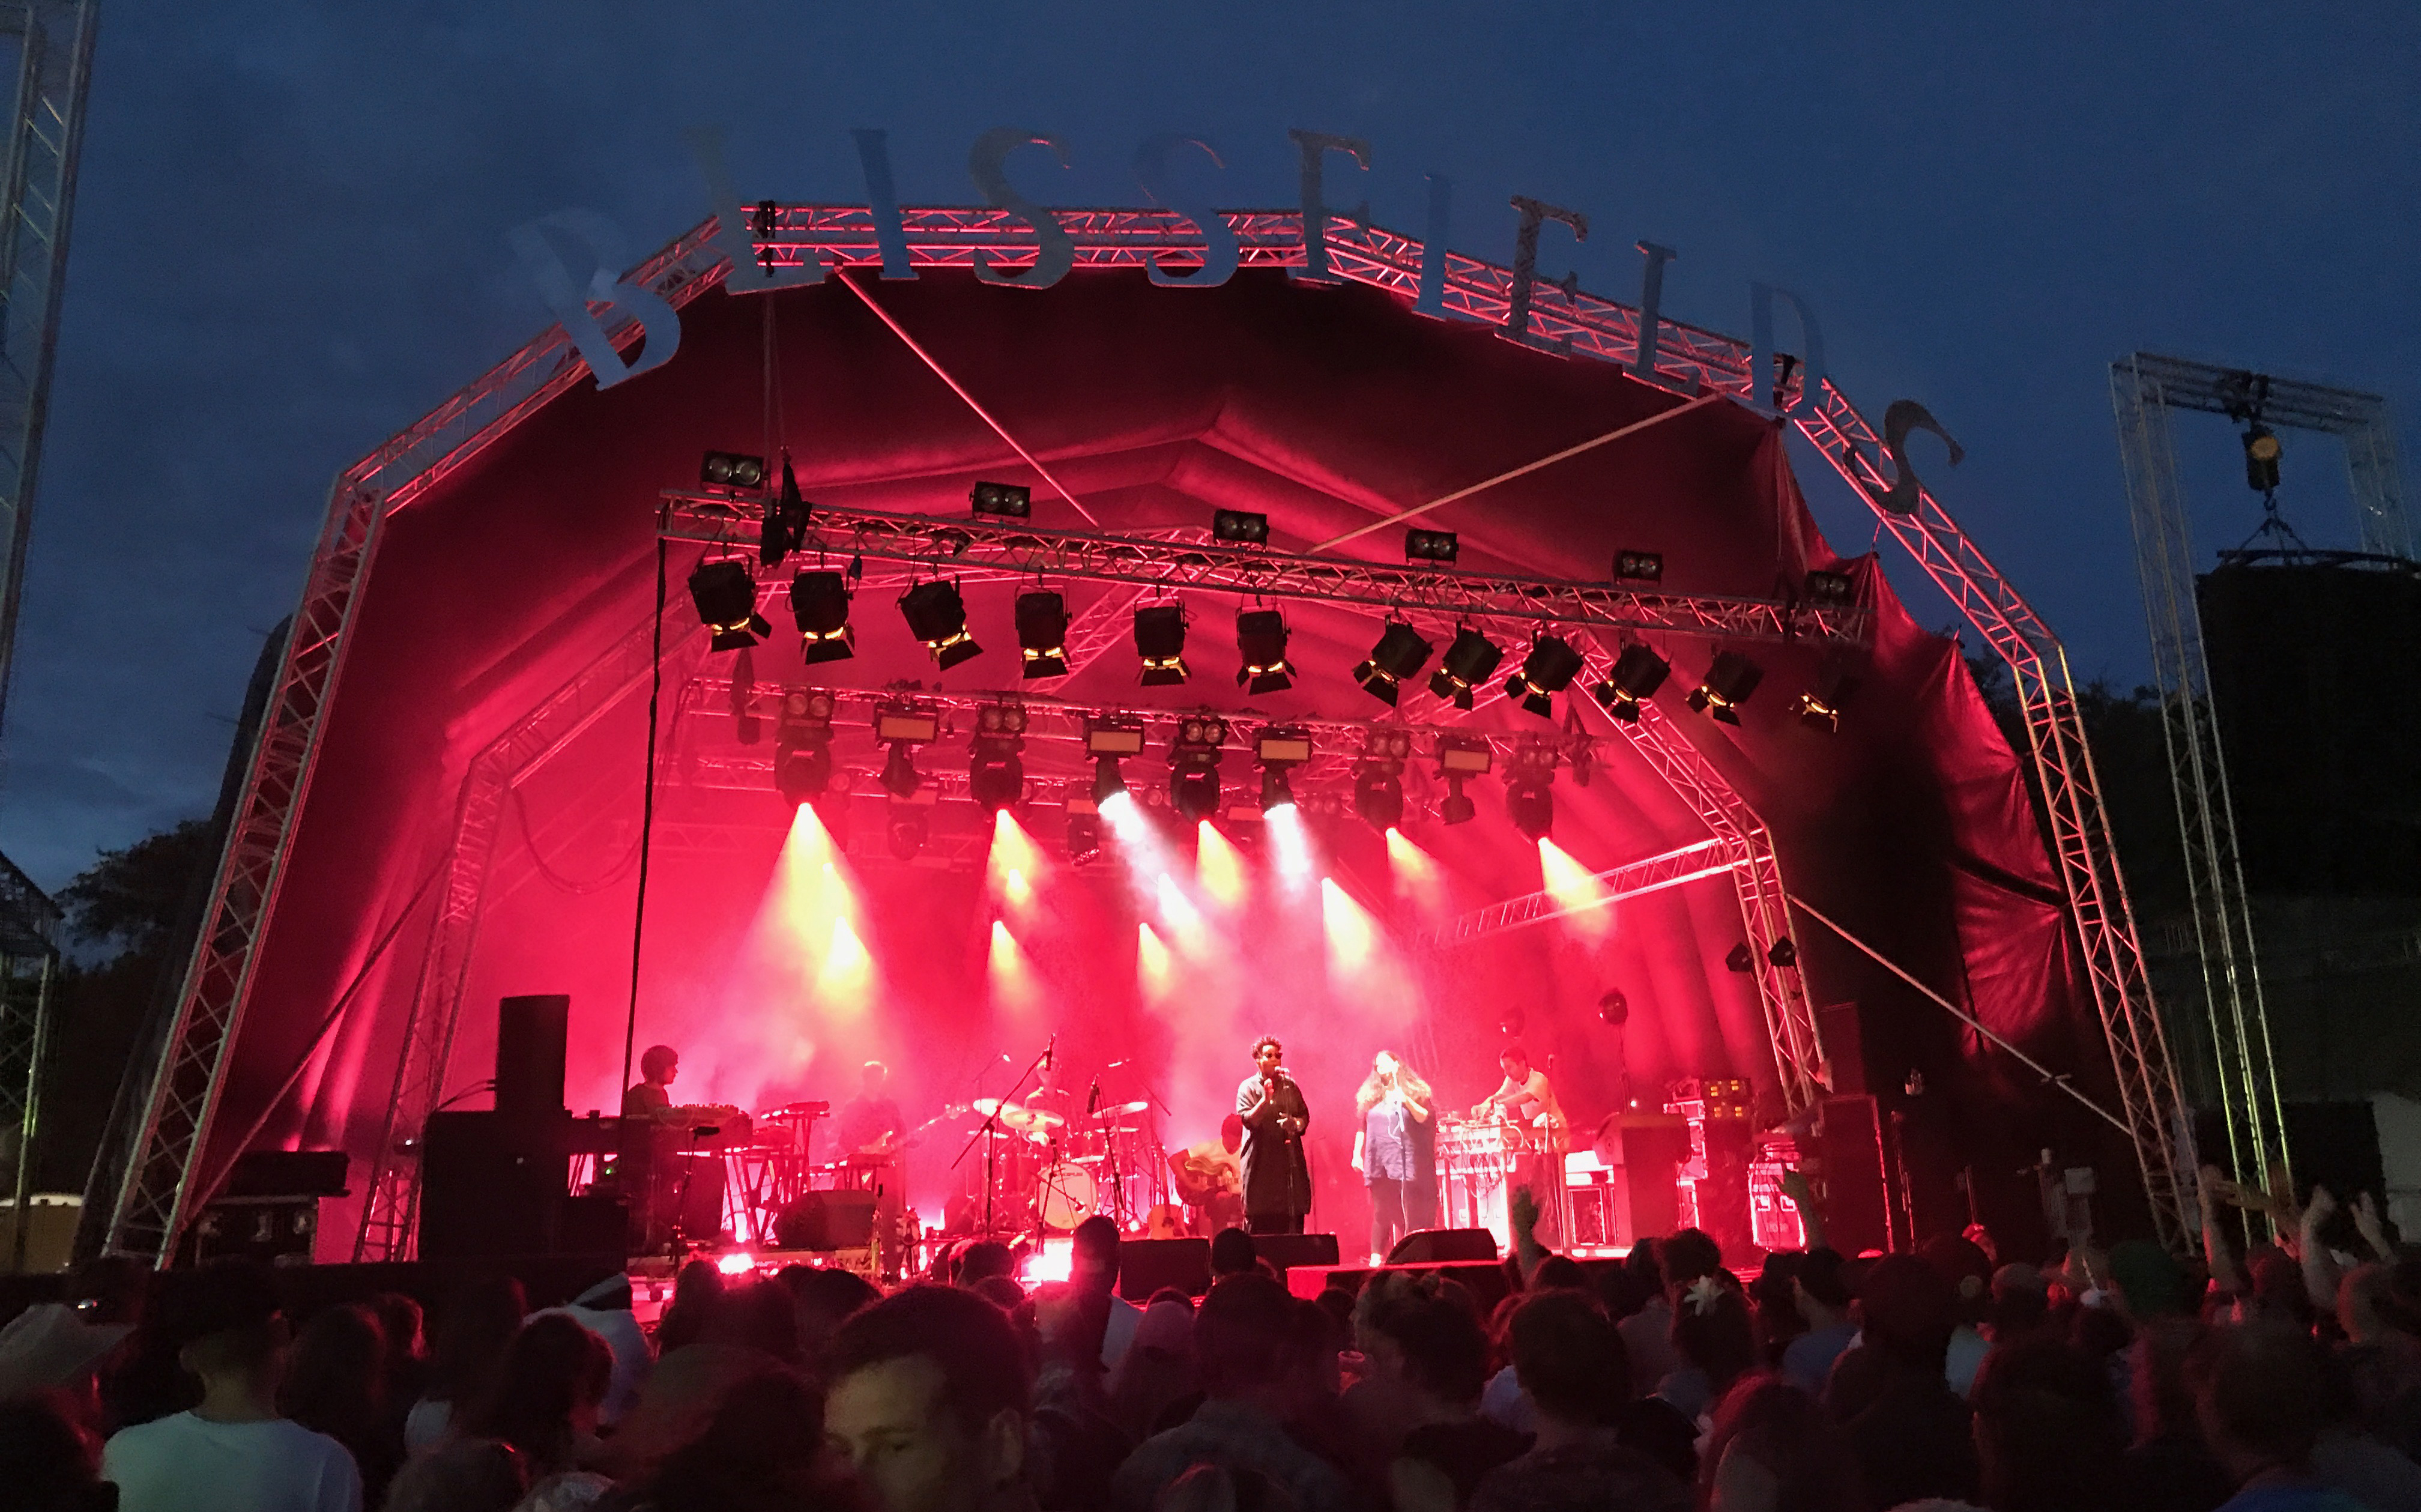 The Cinematic Orchestra playing a fantastic set on the Theatre of the Bizarre